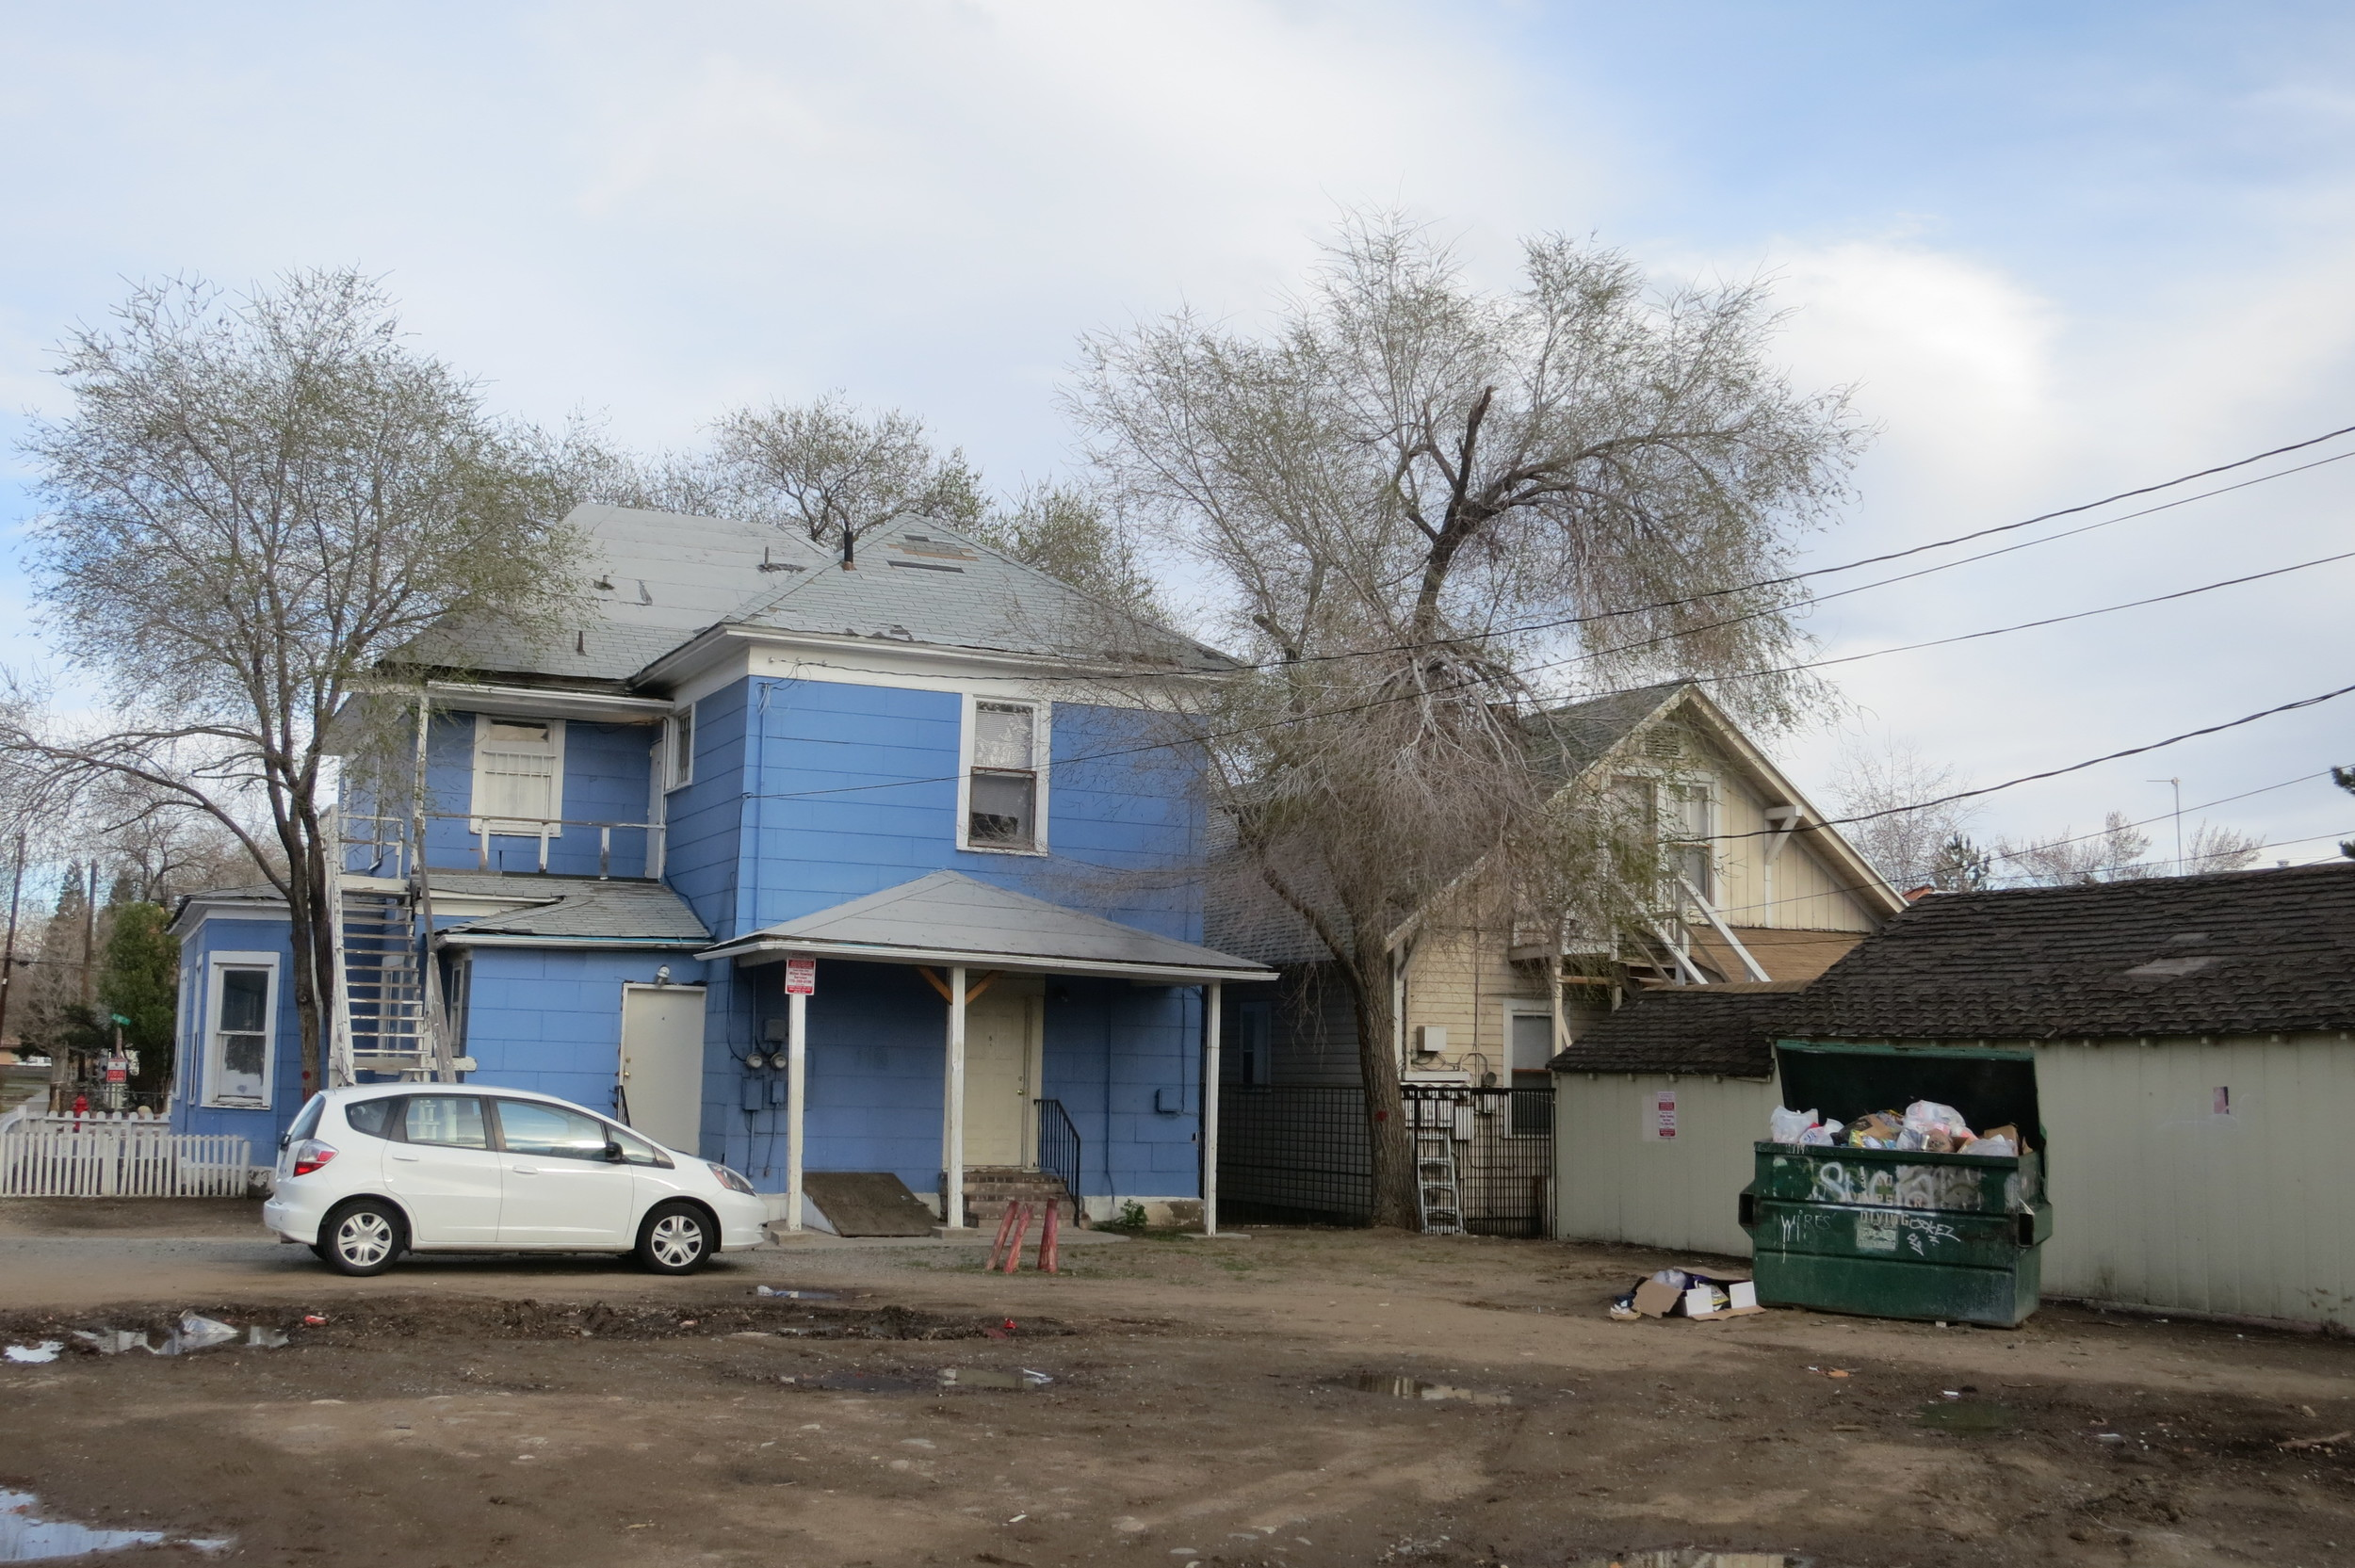 Thornton says he understands Reno needs to be revitalized in certain areas, but that this revitalization needs to be done with thought for the people now living there and smart planning. This is part of the block which will soon be demolished. Photo from earlier this year.